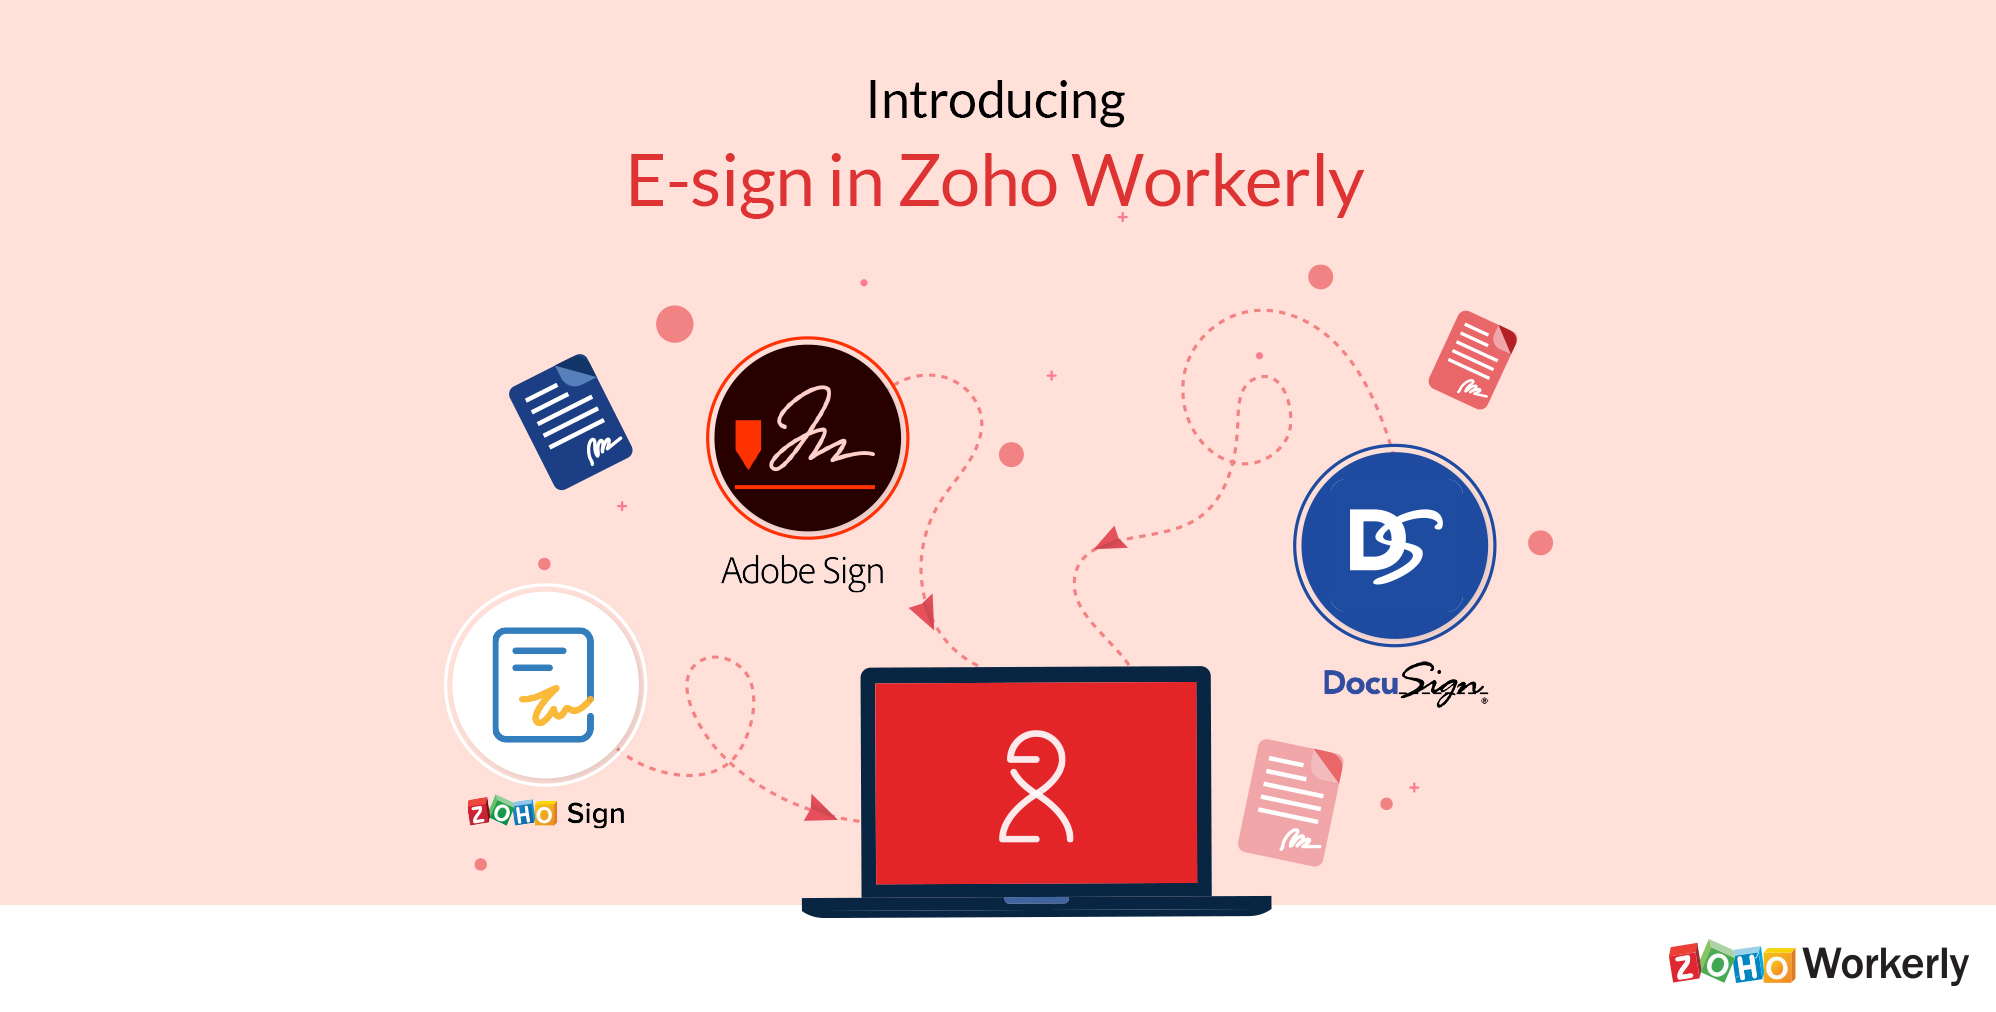 Approvals Made Faster with E-Sign in Zoho Workerly